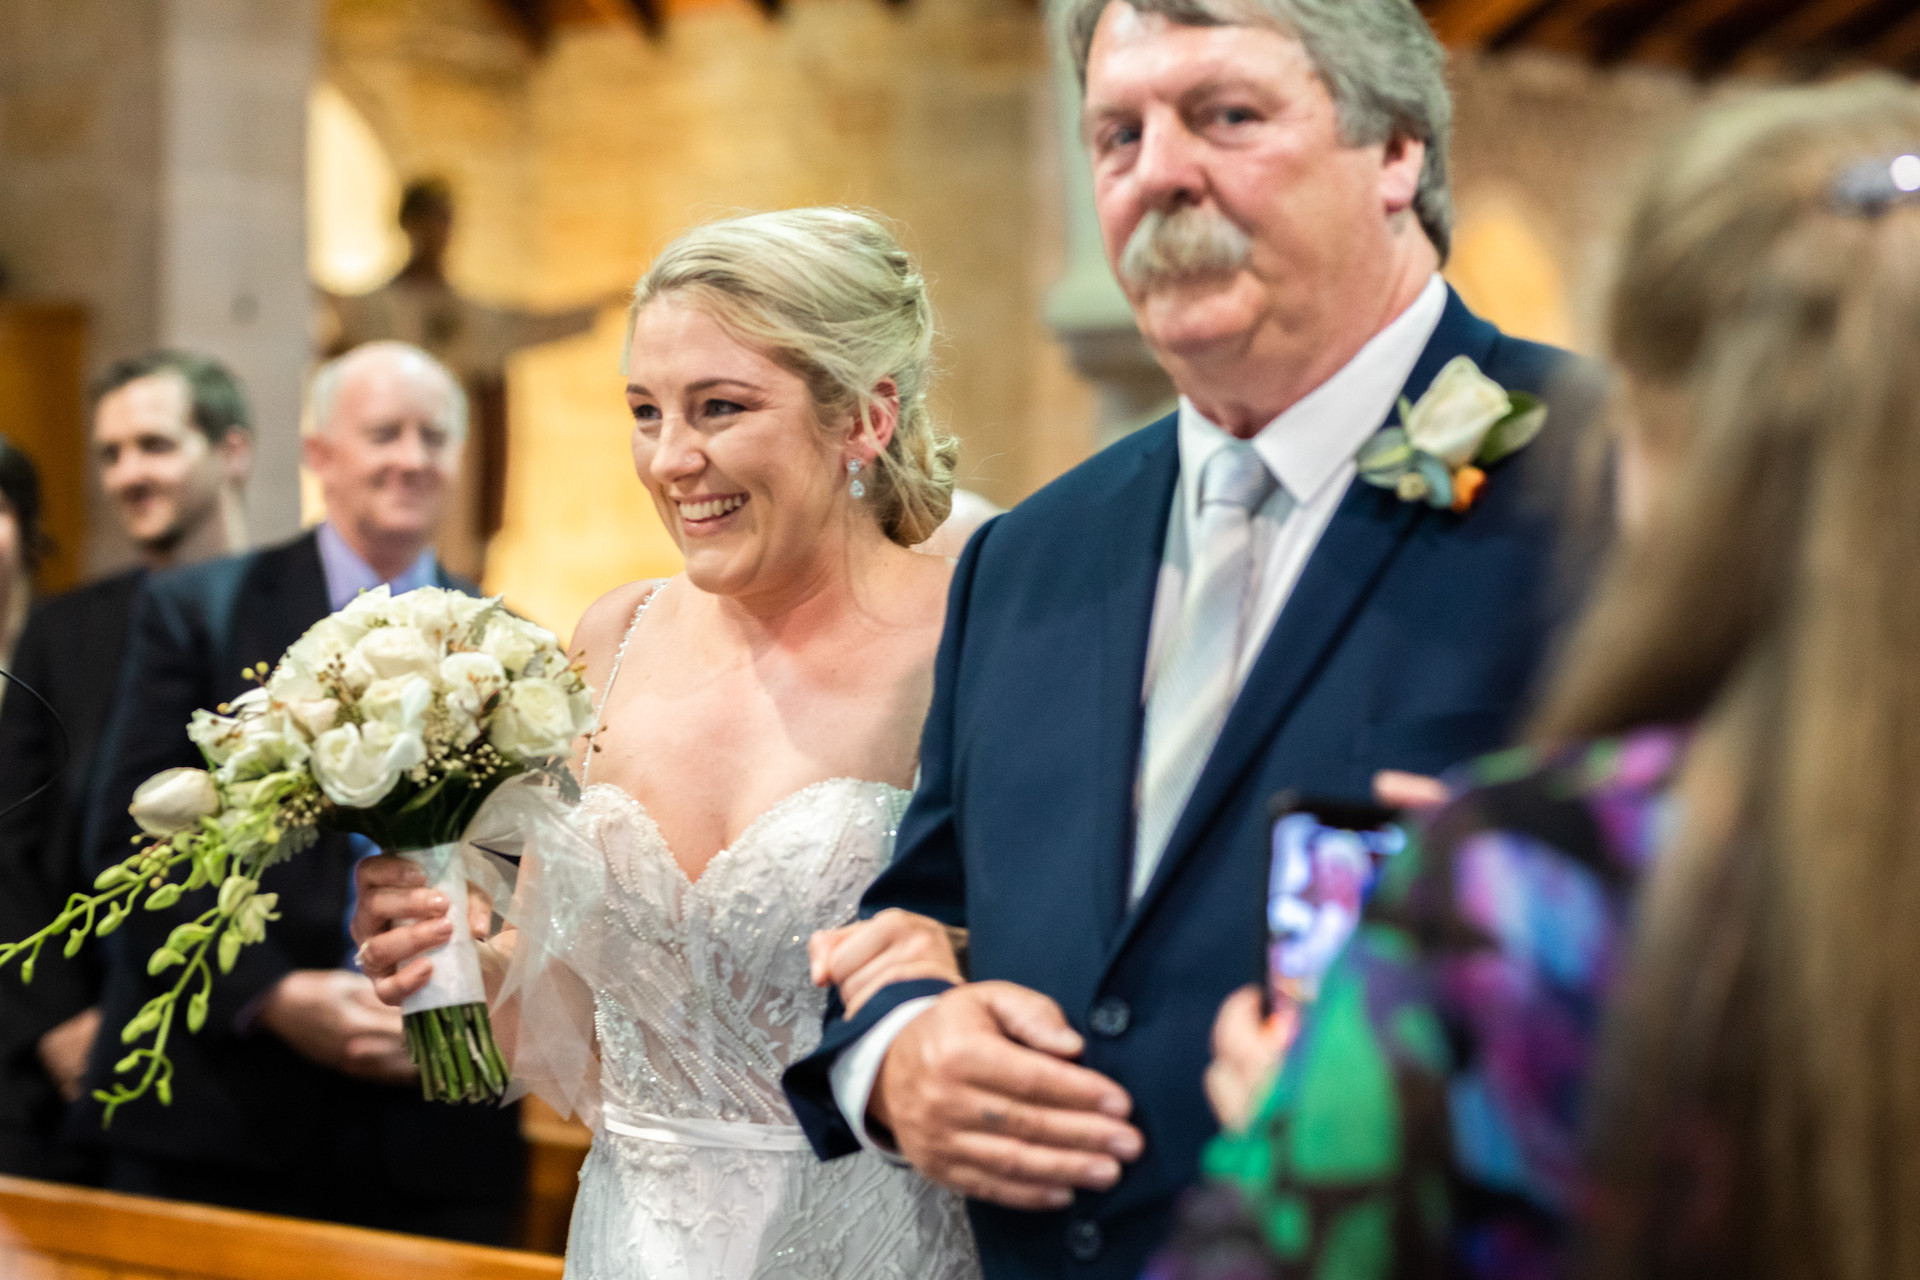 wedding-videography-and-photography (15)